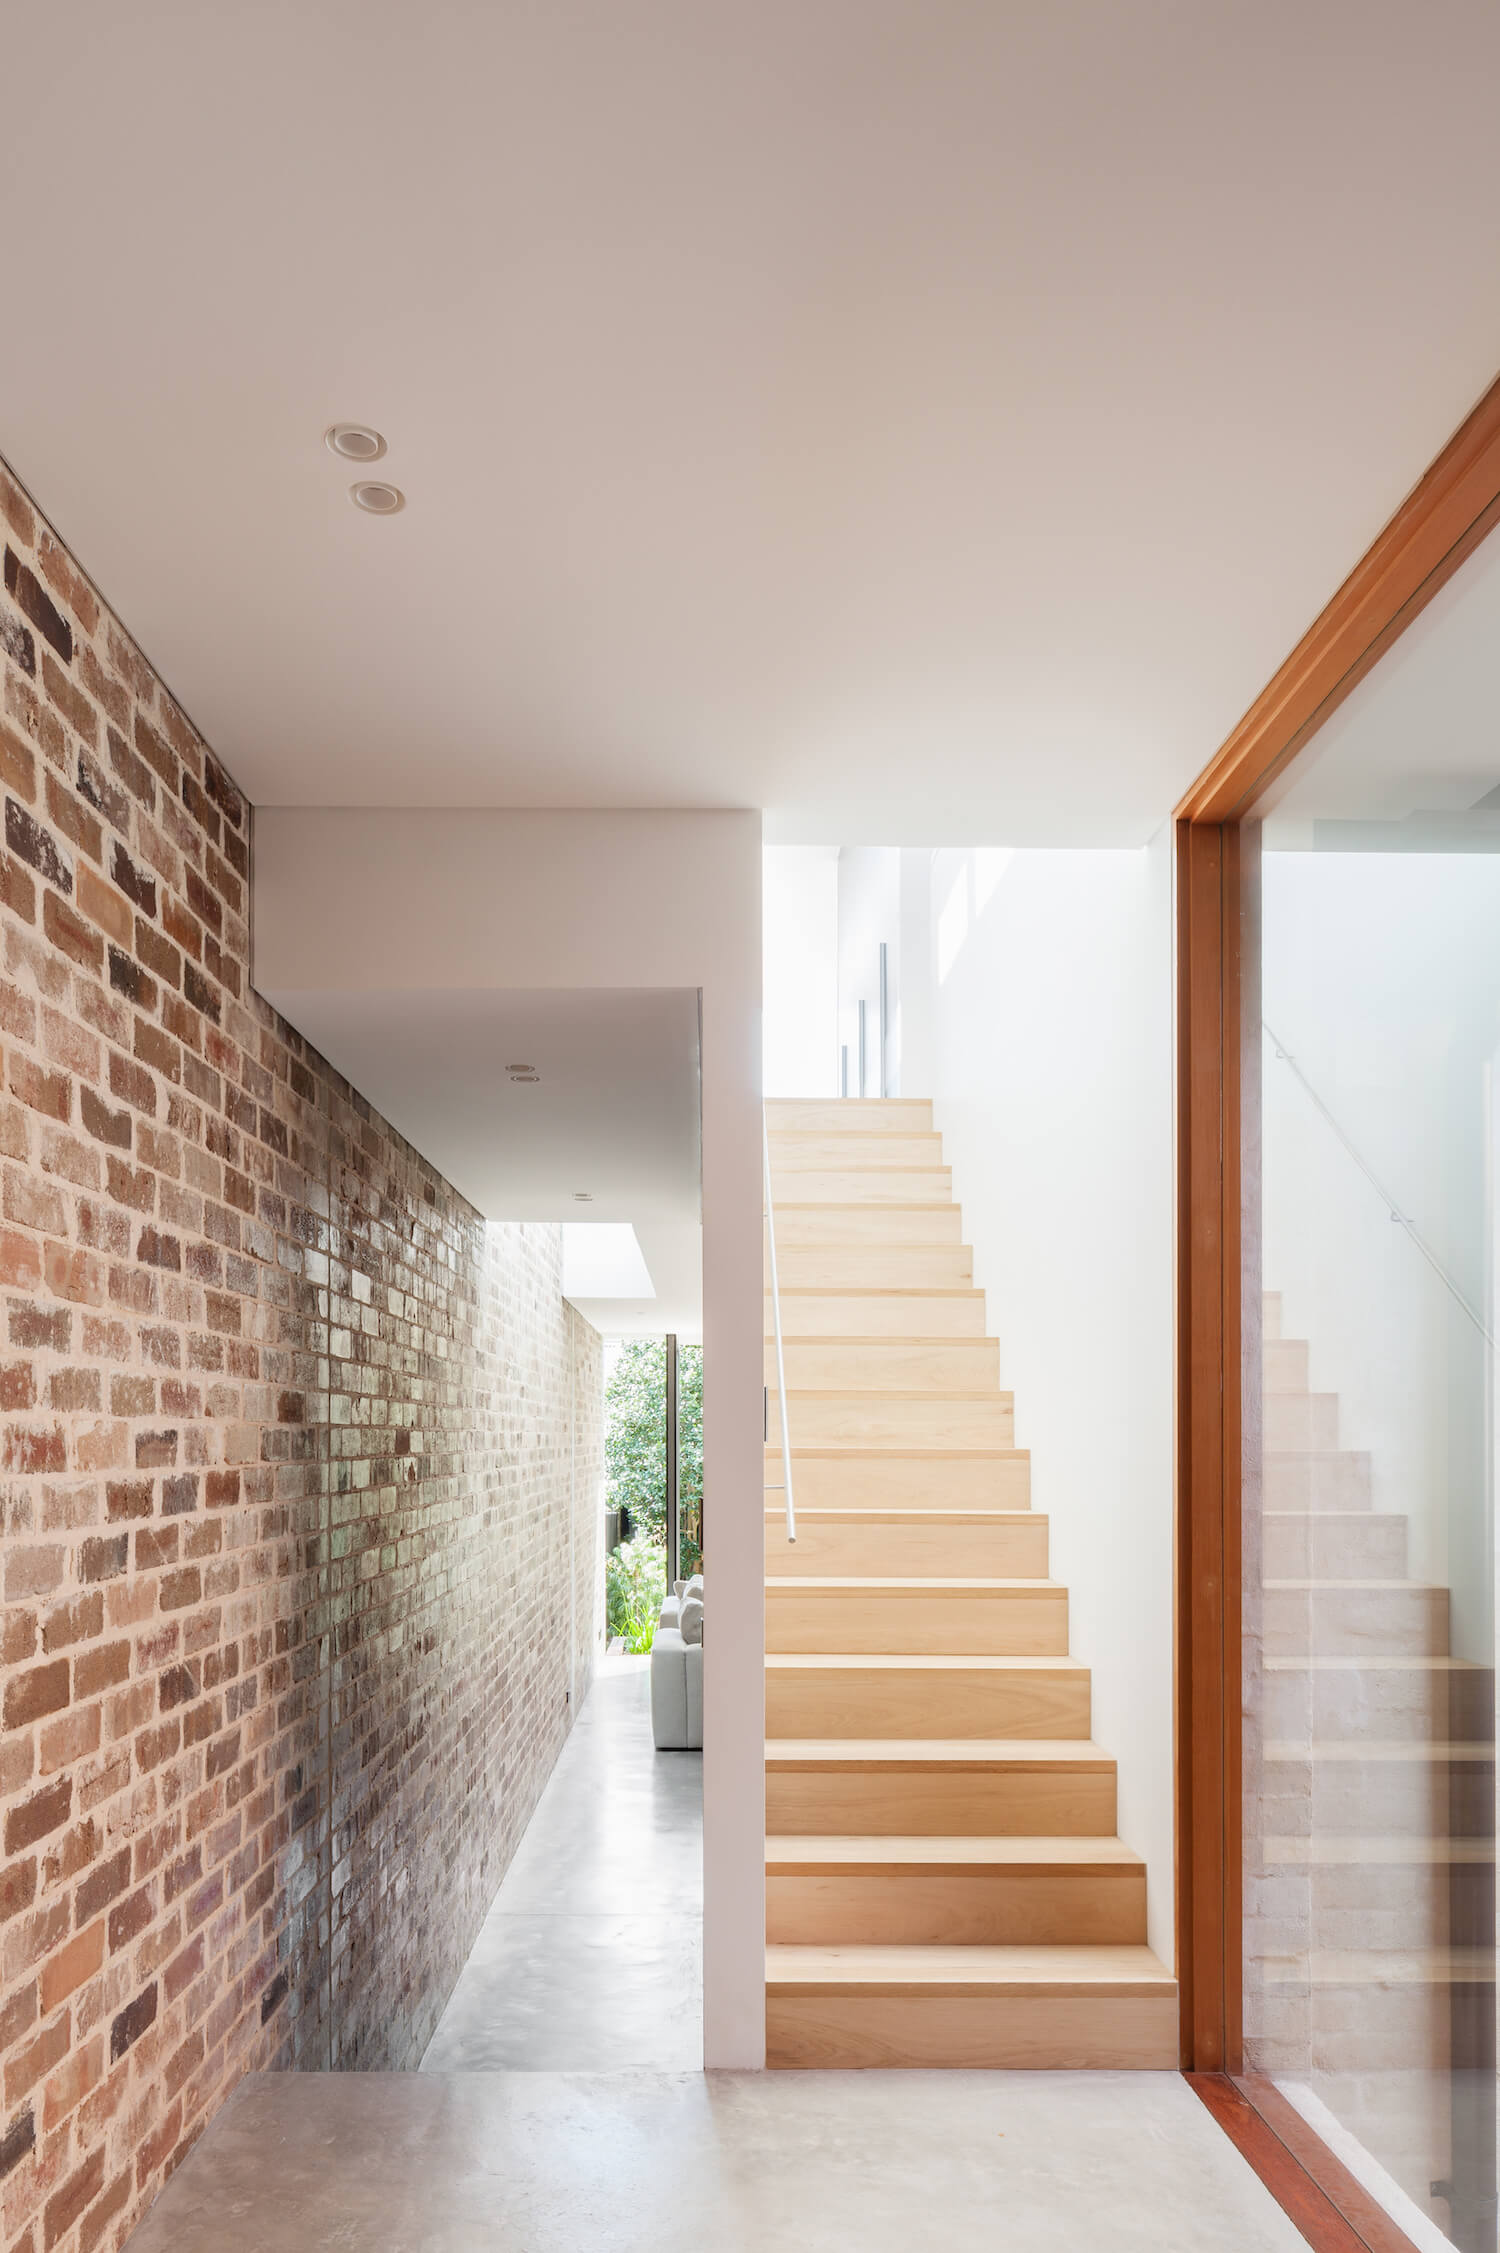 est living interiors d house marston architects 8